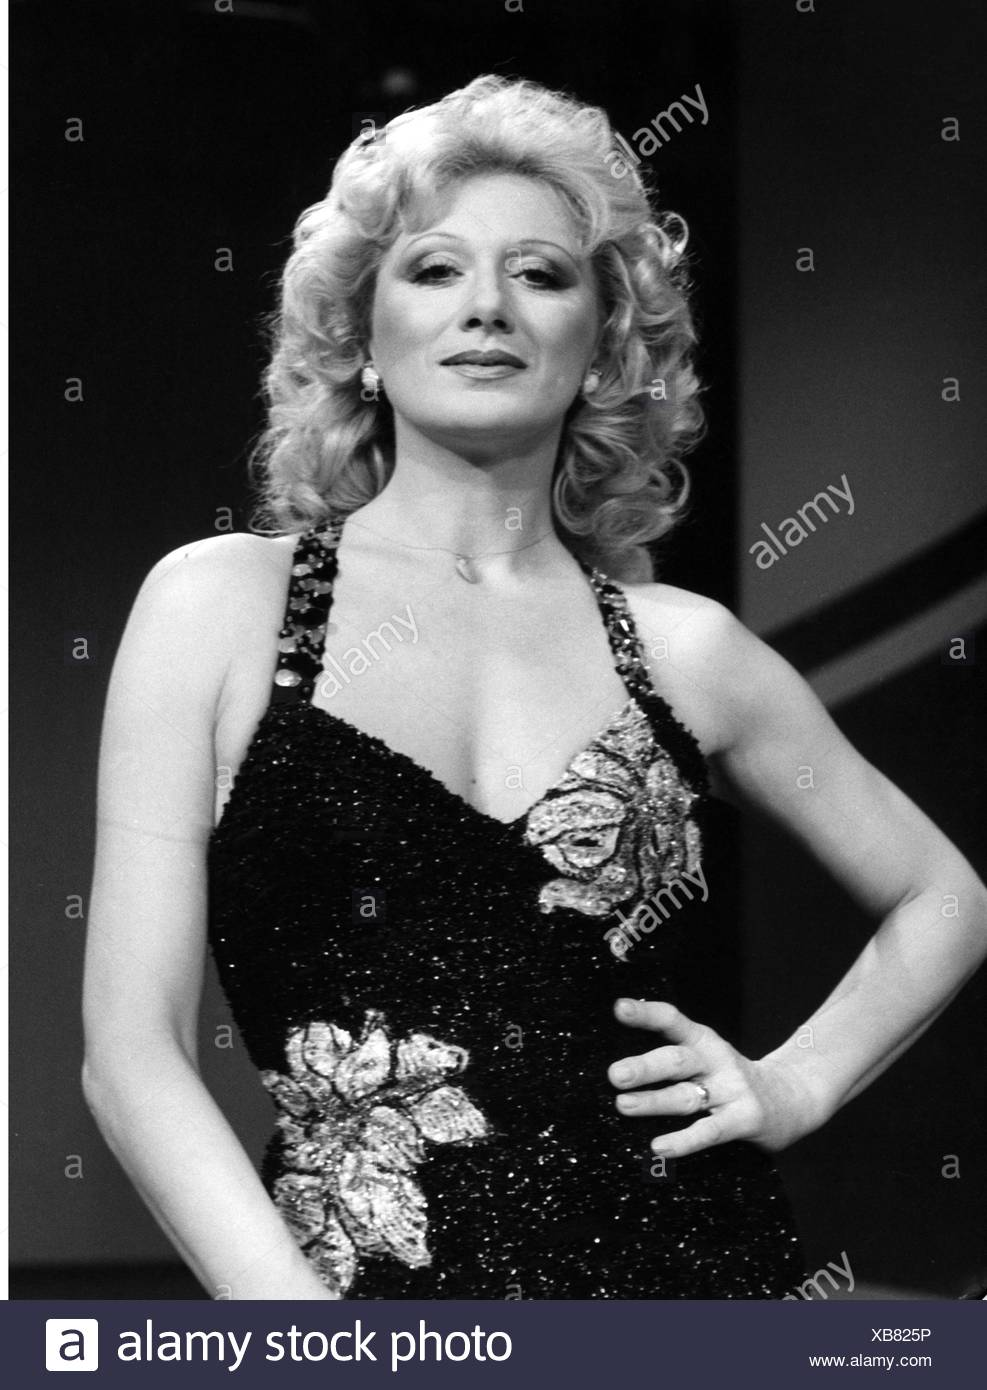 Werner, Margot, 8.12.1937 - 1.7.2012, Austrian dancer and singer, half length, at the ARD television show 'Die verflixte 7', 7.4.1984, Additional-Rights-Clearances-NA - Stock Image